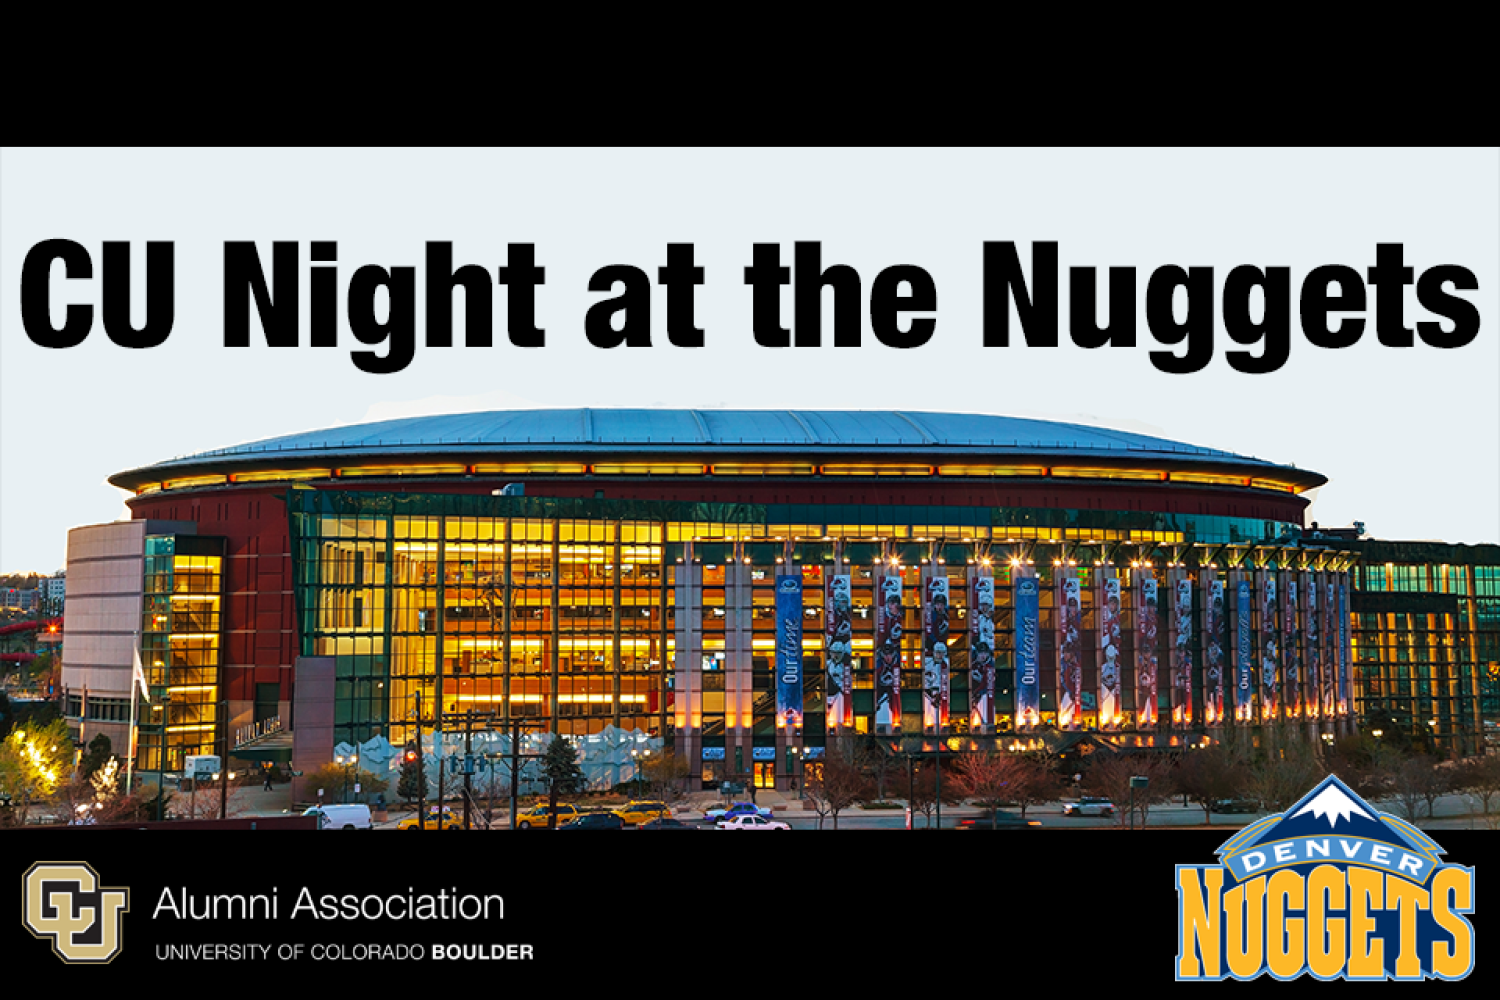 CU Night at the Nuggets is coming!